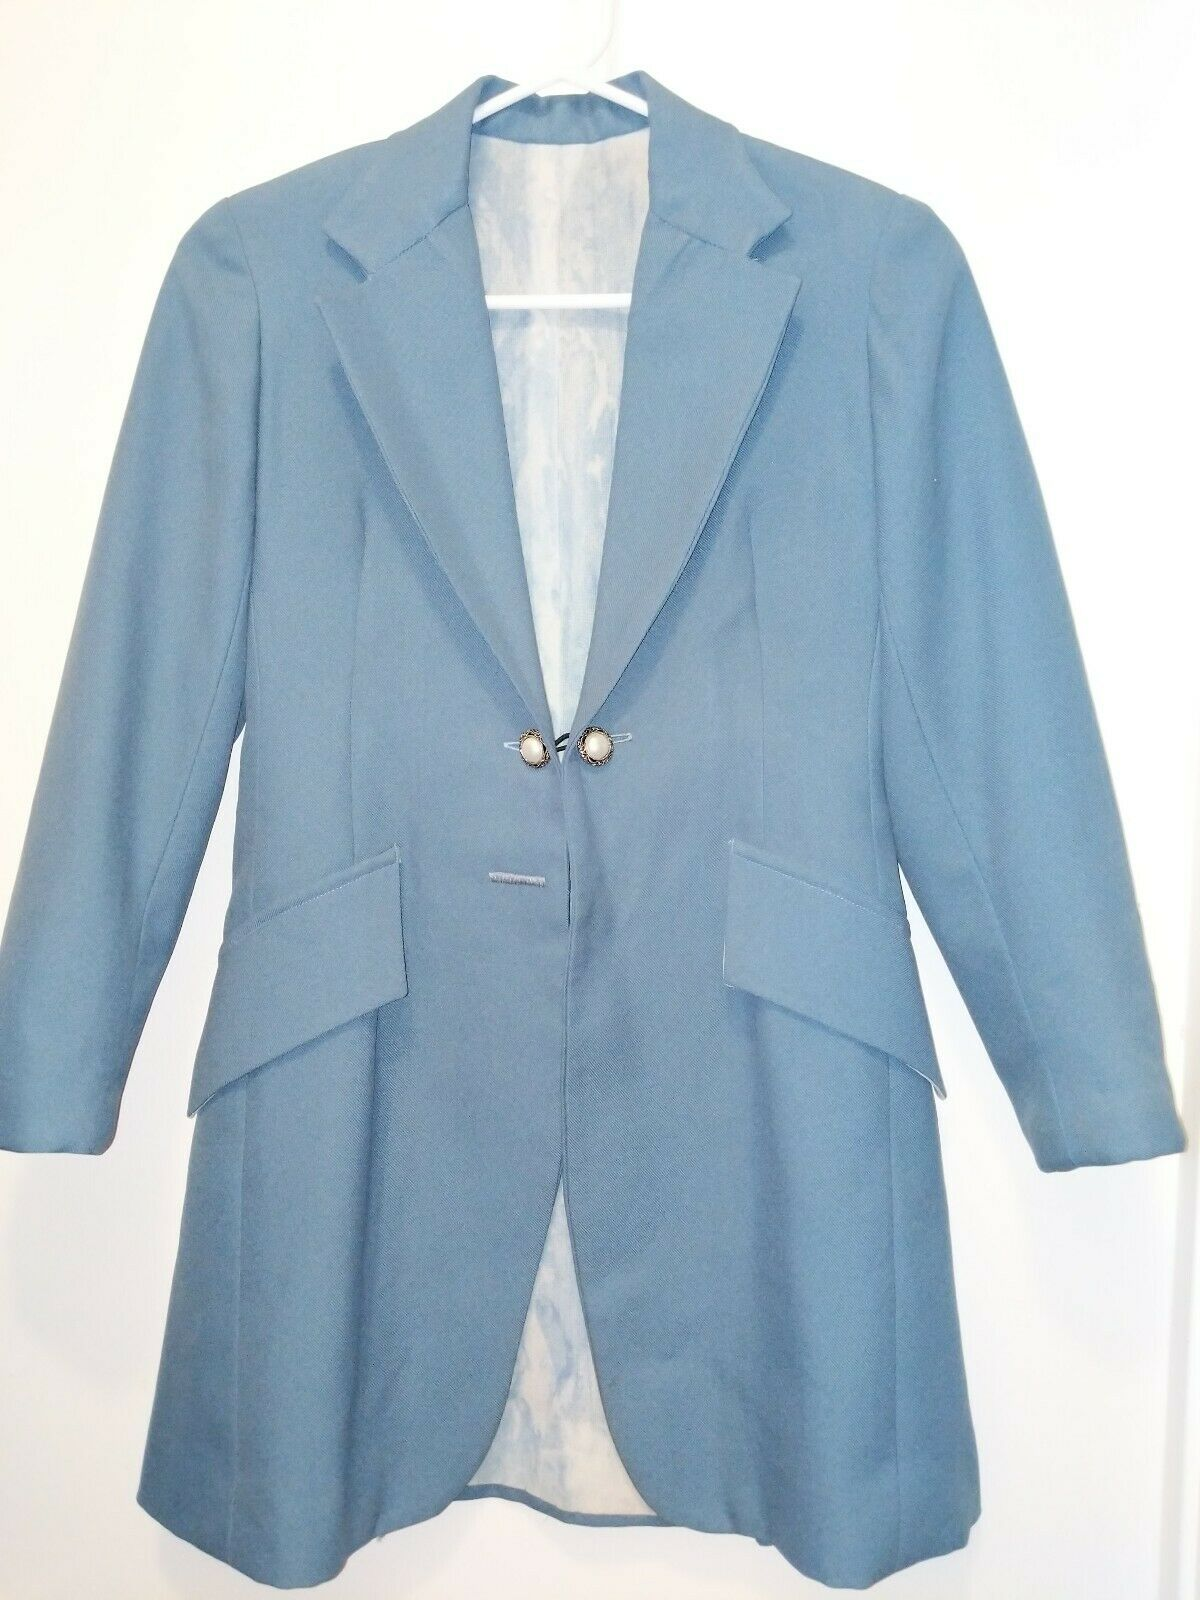 Saddleseat Youth  day coat bluee  here has the latest